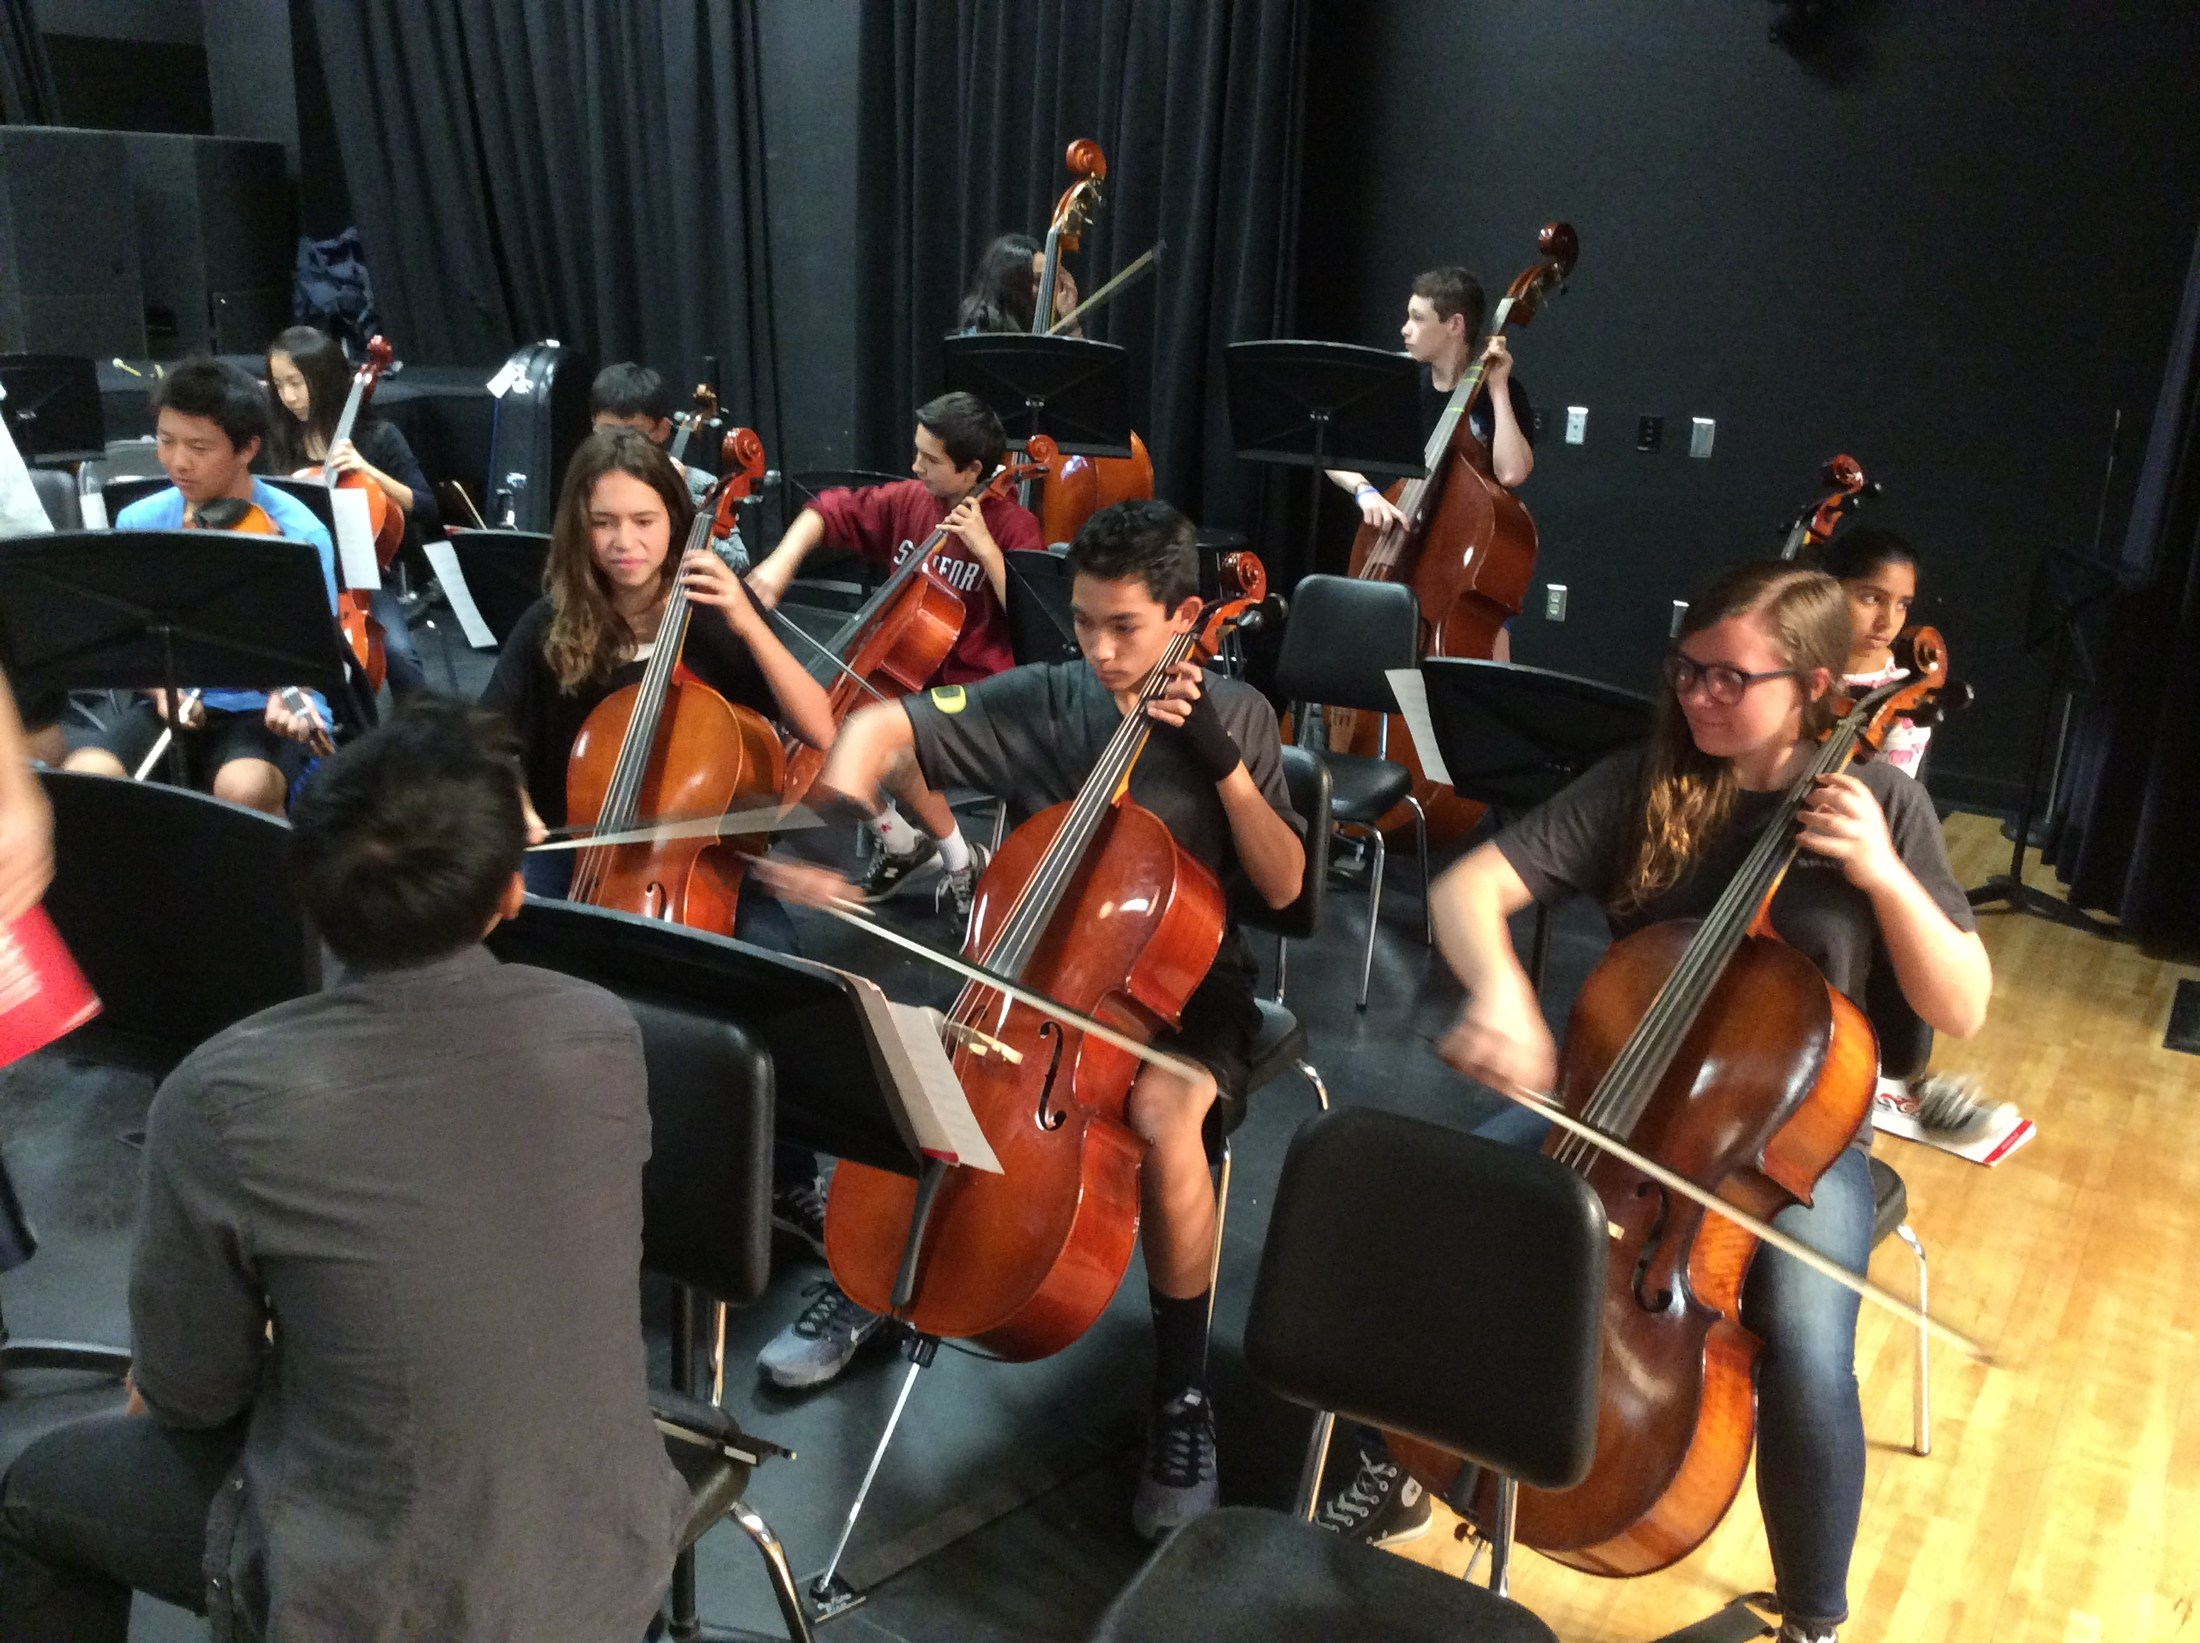 Orchestra students rehearsing for a concert.